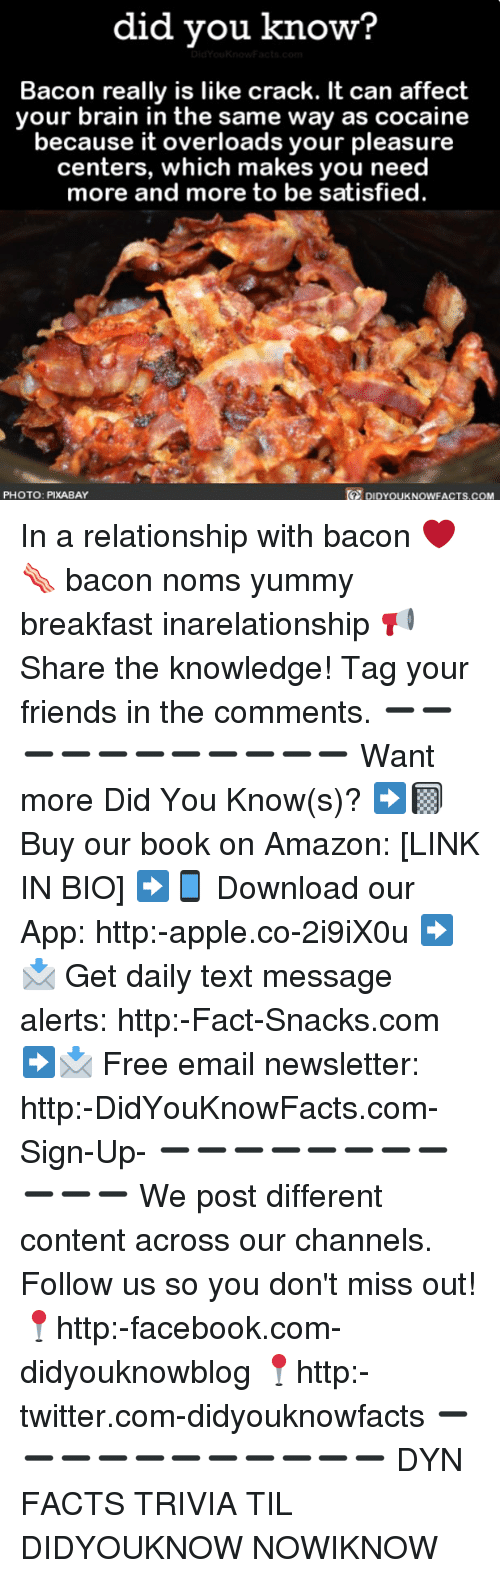 noms: did vou know?  Bacon really is like crack. It can affect  your brain in the same way as cocaine  because it overloads your pleasure  centers, which makes you need  more and more to be satisfied  te  PHOTO: PIXABAY  DIDYOUKNOWFACTS.COM In a relationship with bacon ❤️🥓 bacon noms yummy breakfast inarelationship 📢 Share the knowledge! Tag your friends in the comments. ➖➖➖➖➖➖➖➖➖➖➖ Want more Did You Know(s)? ➡📓 Buy our book on Amazon: [LINK IN BIO] ➡📱 Download our App: http:-apple.co-2i9iX0u ➡📩 Get daily text message alerts: http:-Fact-Snacks.com ➡📩 Free email newsletter: http:-DidYouKnowFacts.com-Sign-Up- ➖➖➖➖➖➖➖➖➖➖➖ We post different content across our channels. Follow us so you don't miss out! 📍http:-facebook.com-didyouknowblog 📍http:-twitter.com-didyouknowfacts ➖➖➖➖➖➖➖➖➖➖➖ DYN FACTS TRIVIA TIL DIDYOUKNOW NOWIKNOW